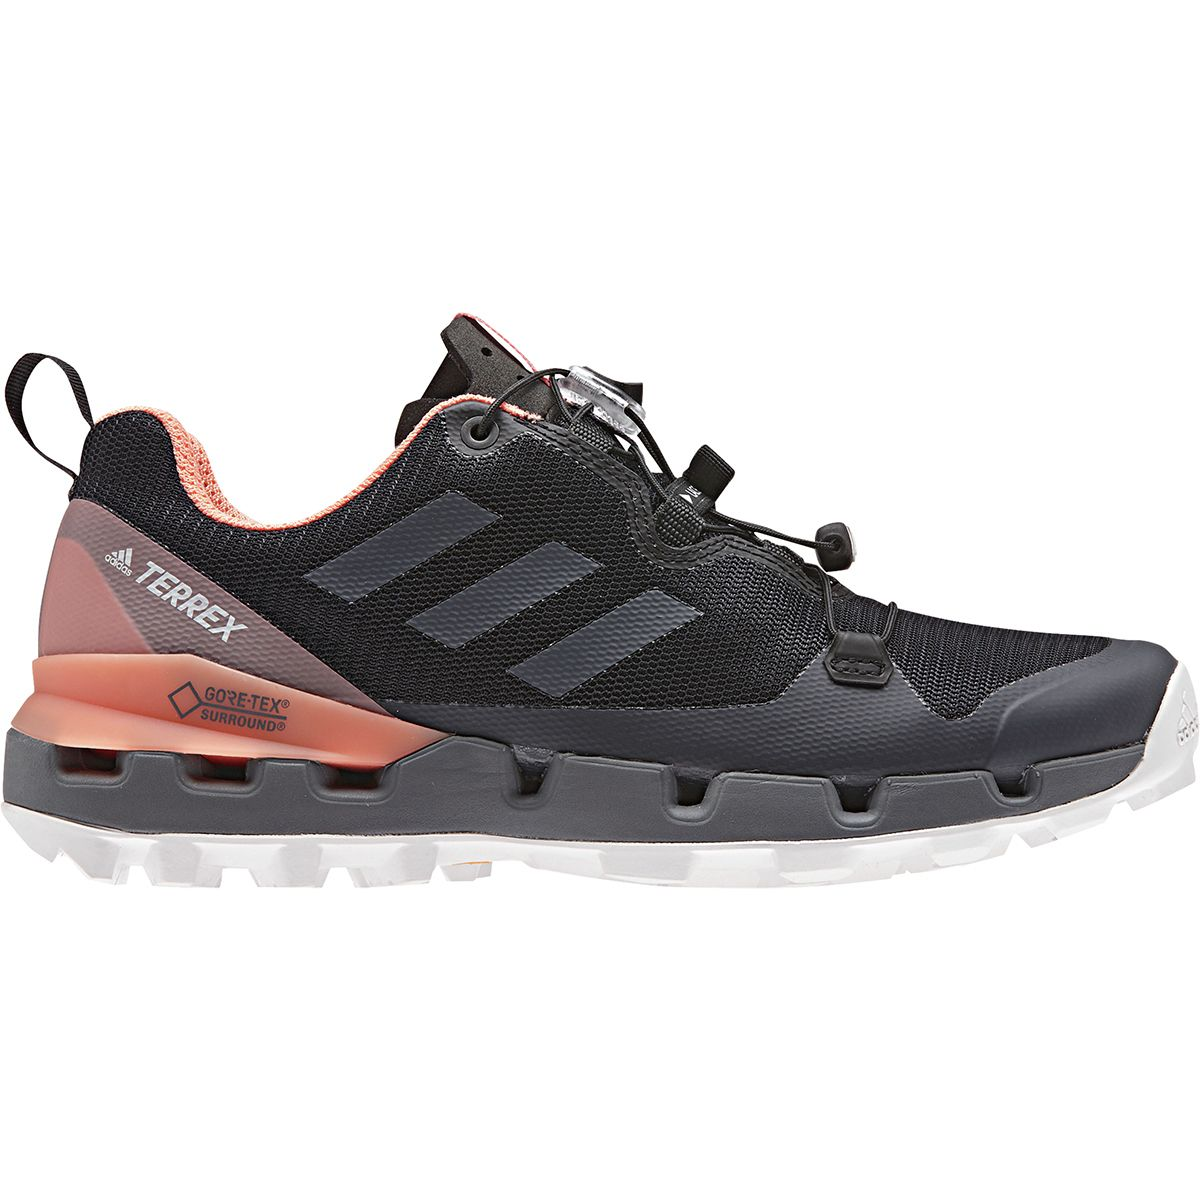 free shipping los angeles delicate colors Adidas Outdoor Terrex Fast GTX Surround Hiking Shoe ...